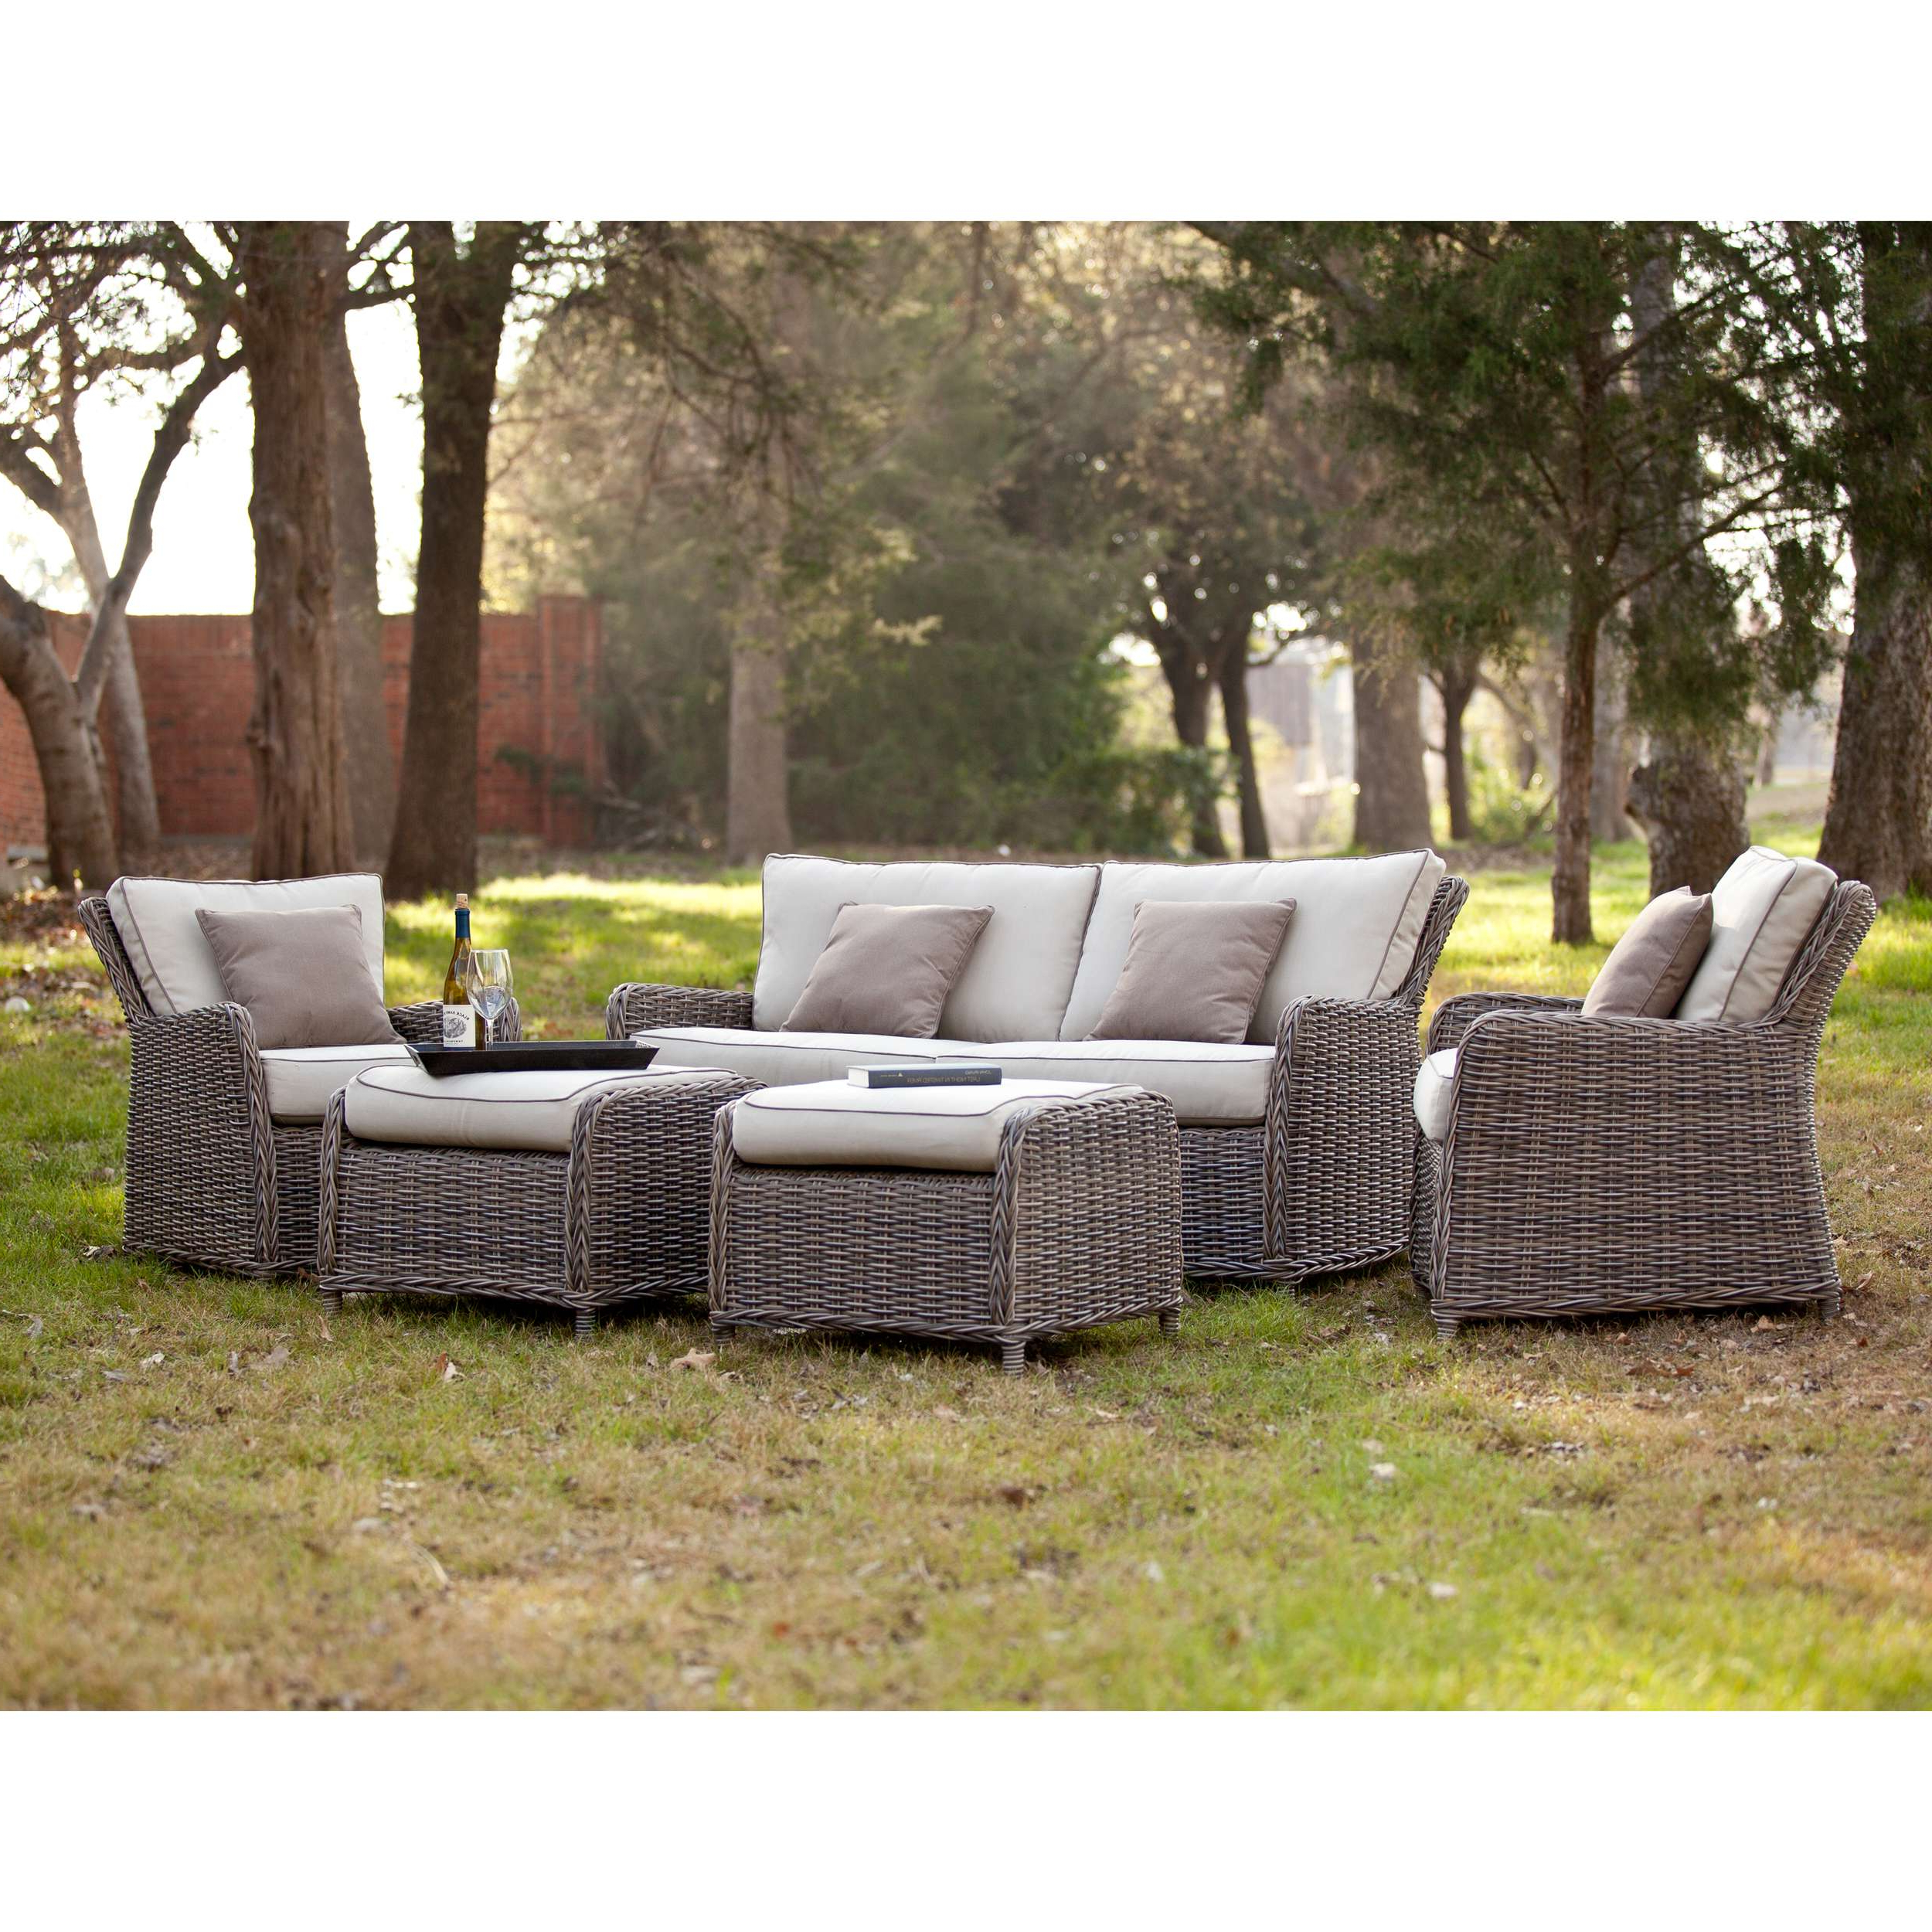 Latest Southern Enterprises Od5543 Intended For Avadi Outdoor Sofas & Ottomans 3 Piece Set (View 9 of 25)